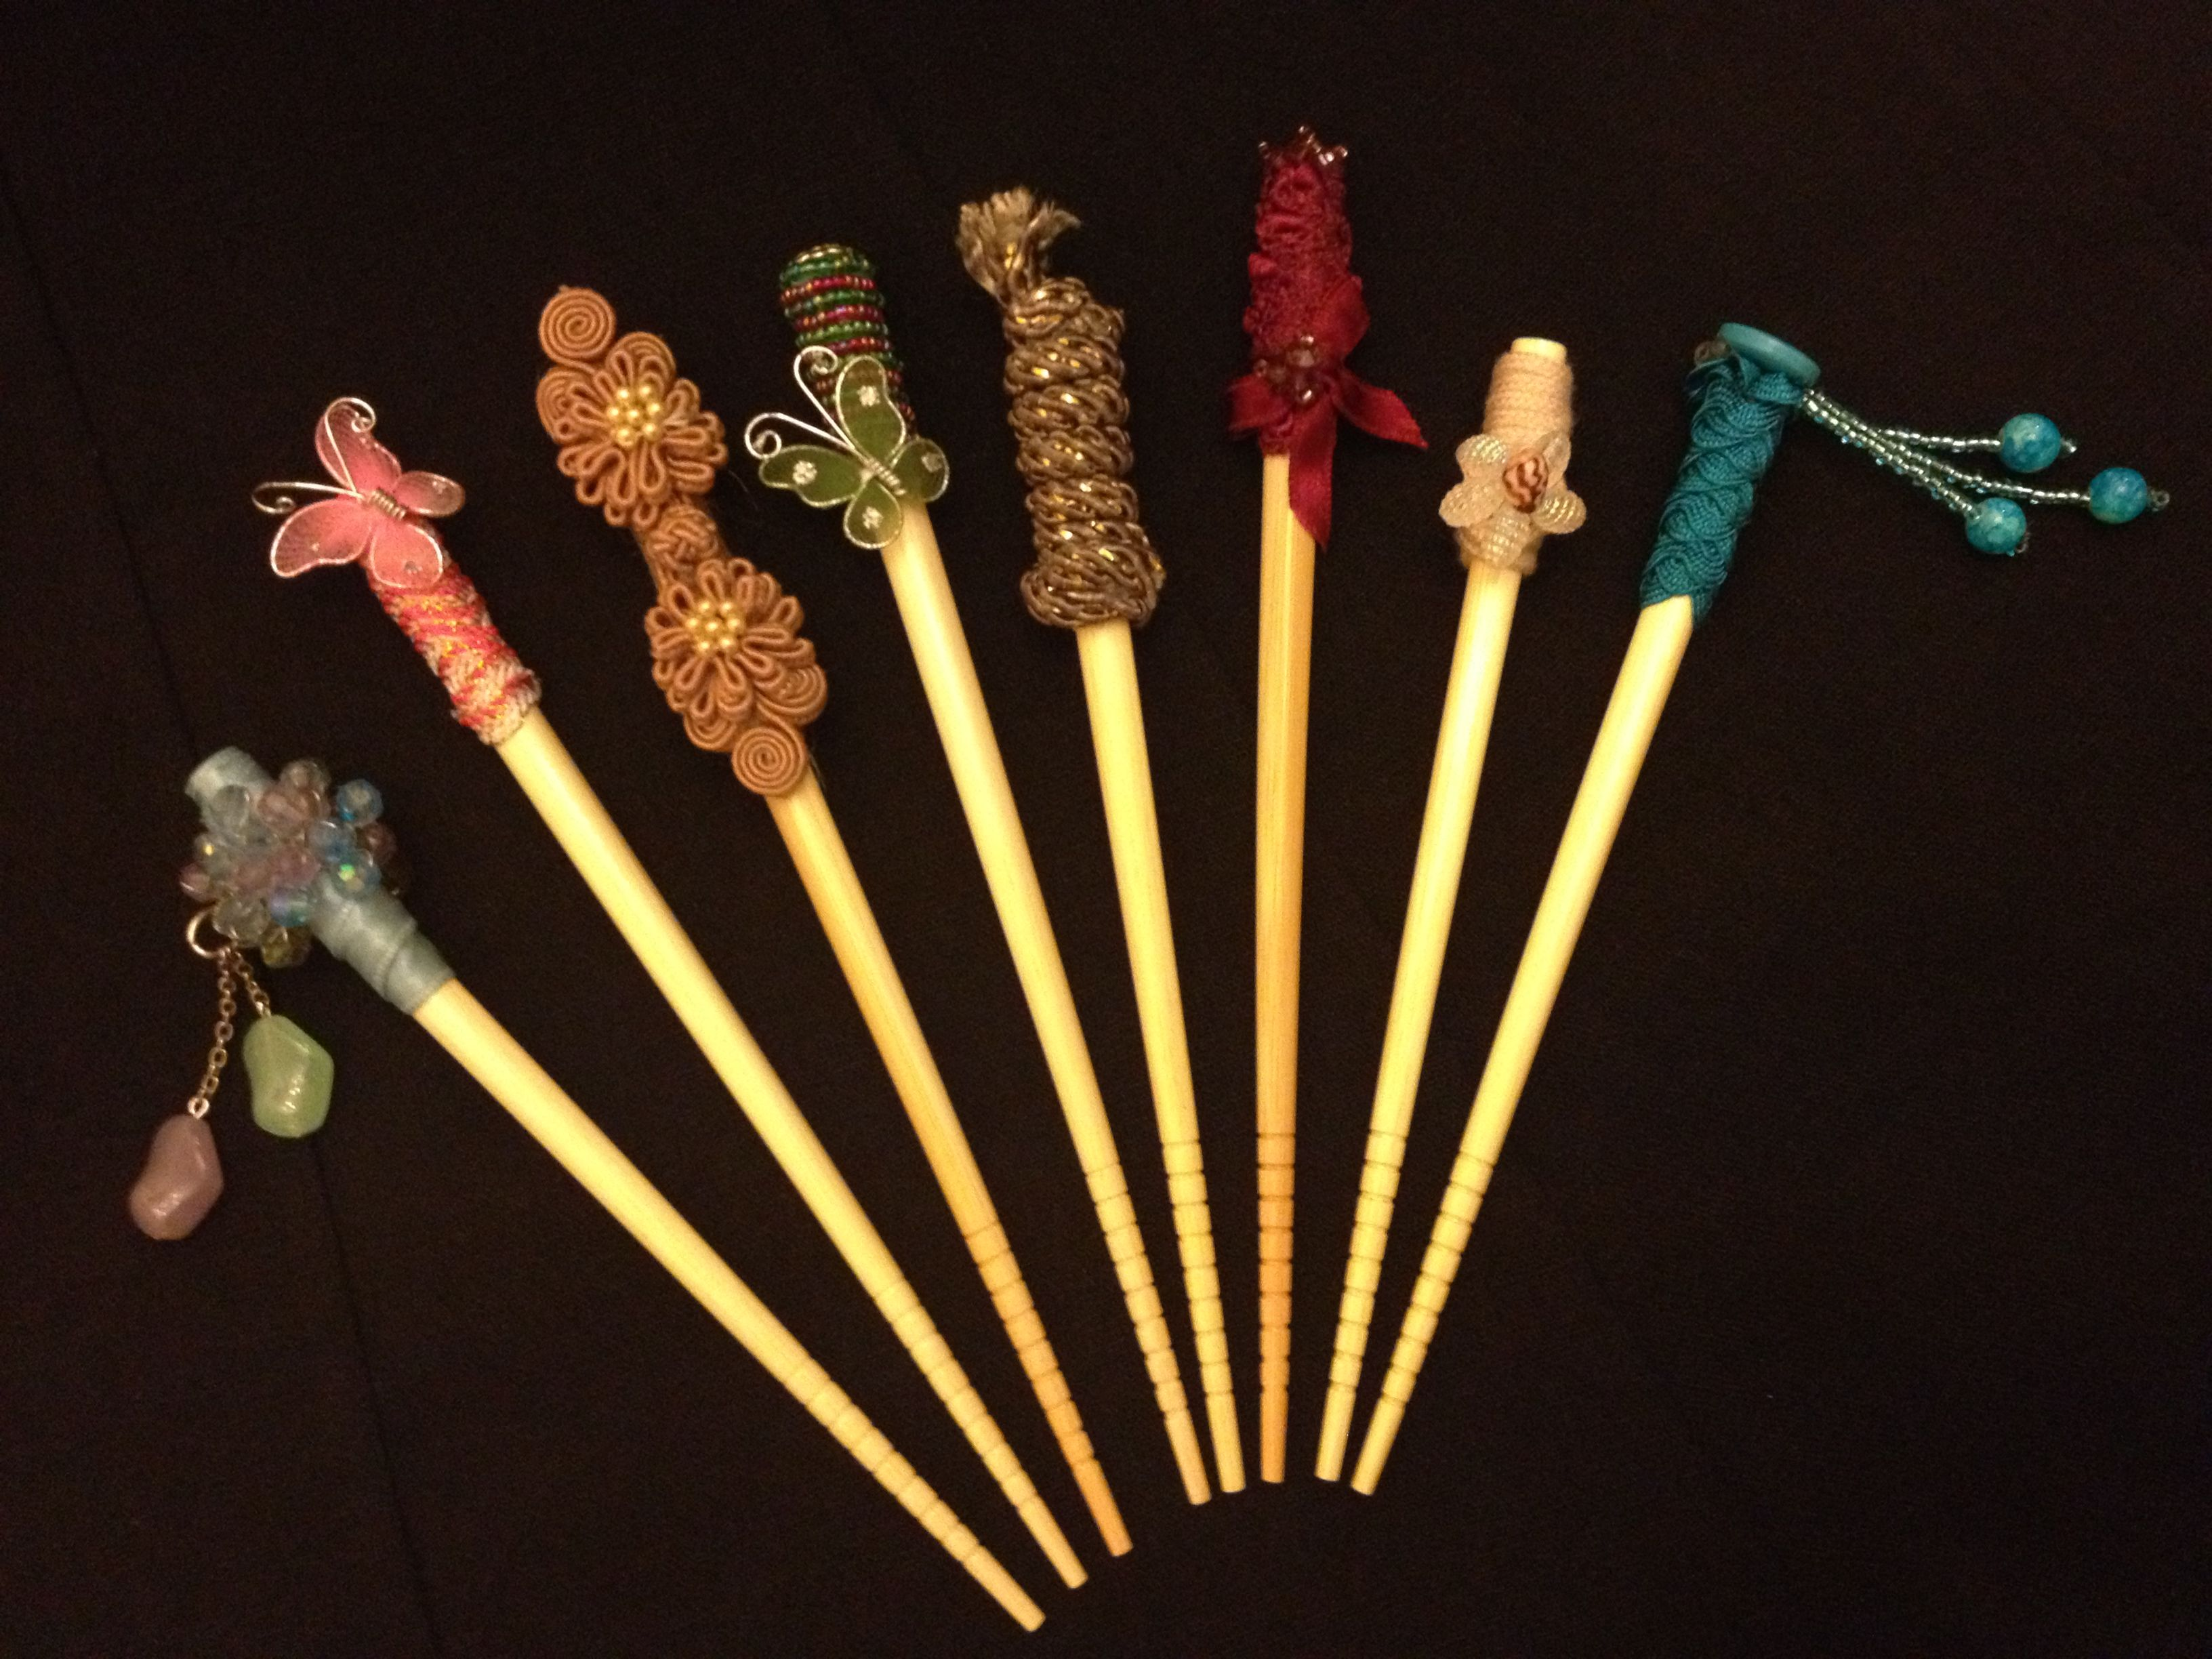 Upcycled Repurposed Accessory From Chopsticks To Hair Sticks Chignon Holders